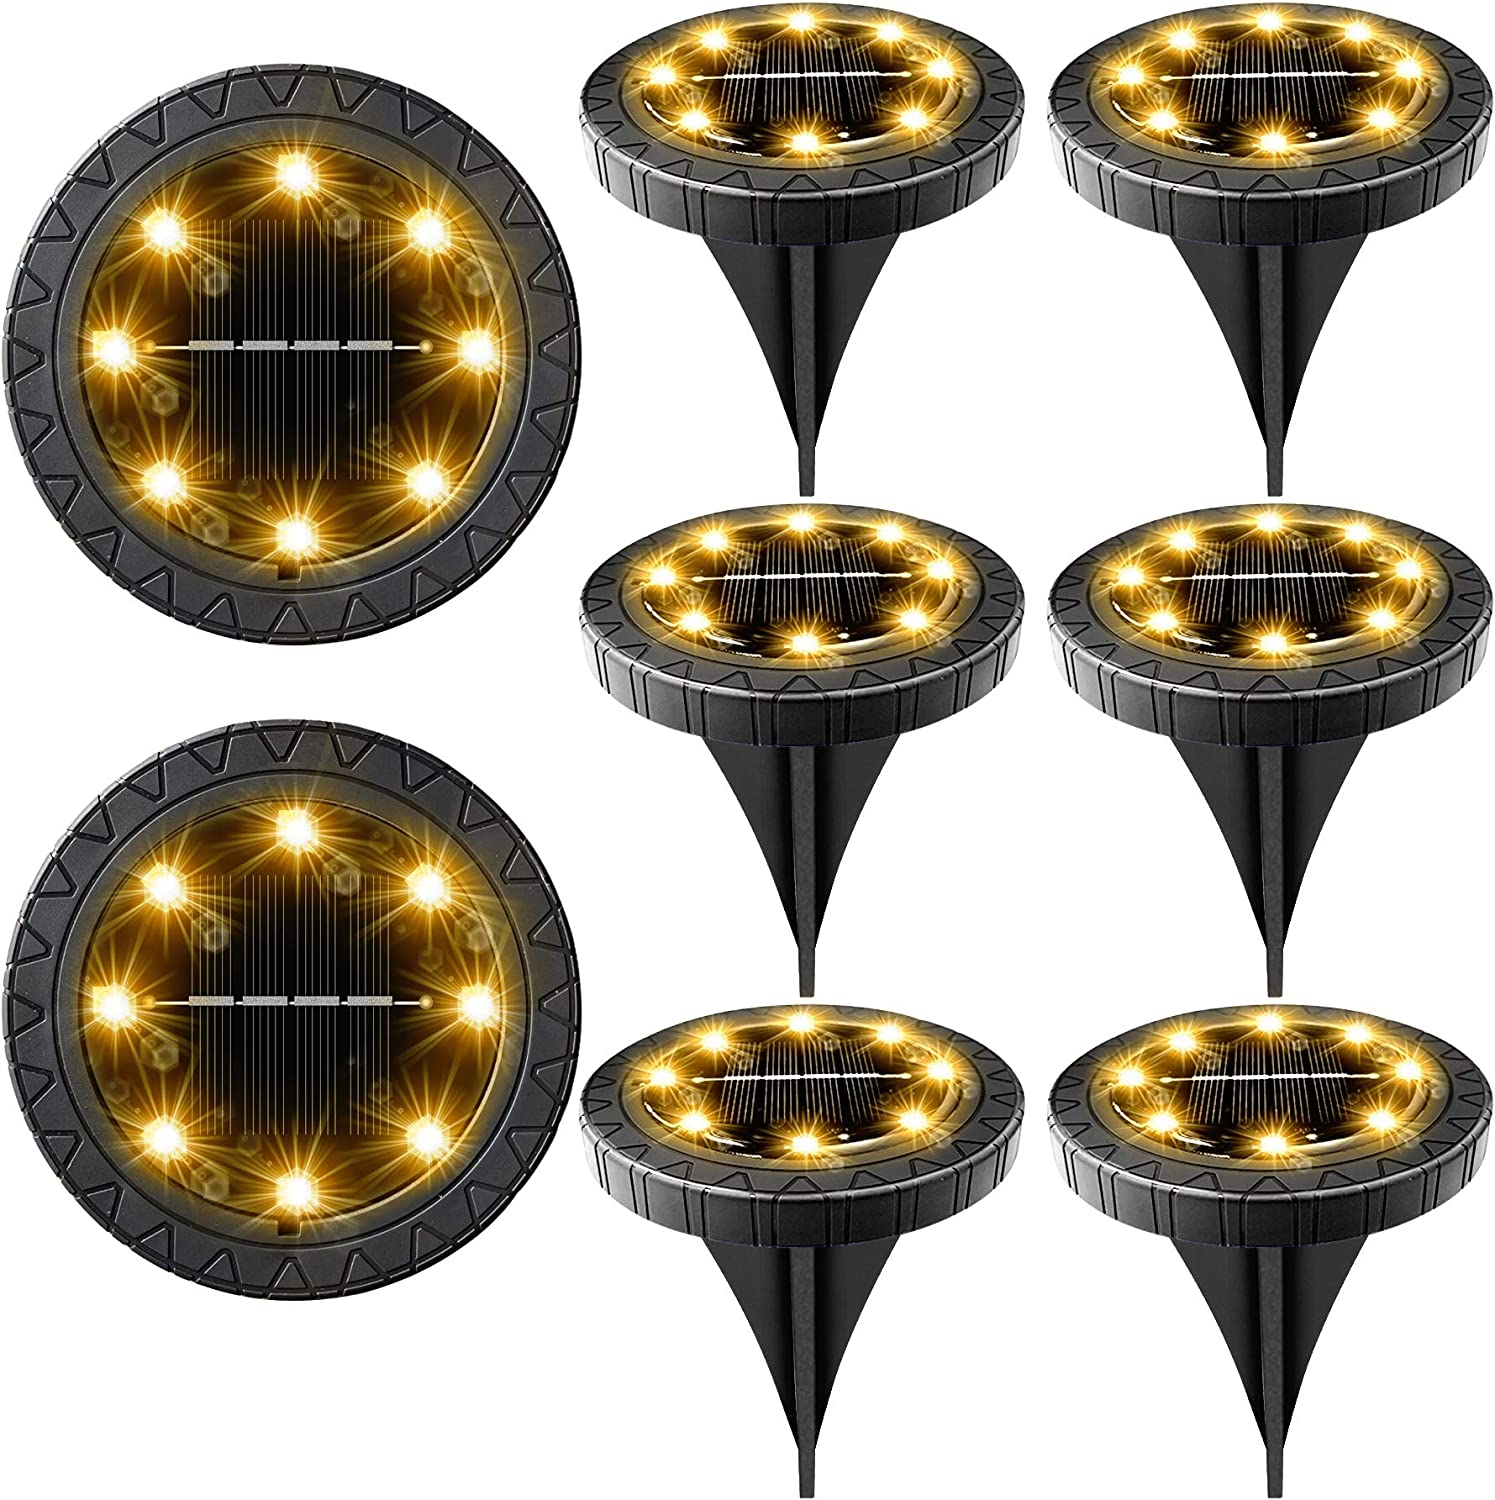 Solar Powered Ground Lights 8 Pack Outdoor LED IP68 D Waterproof Be super Max 90% OFF welcome